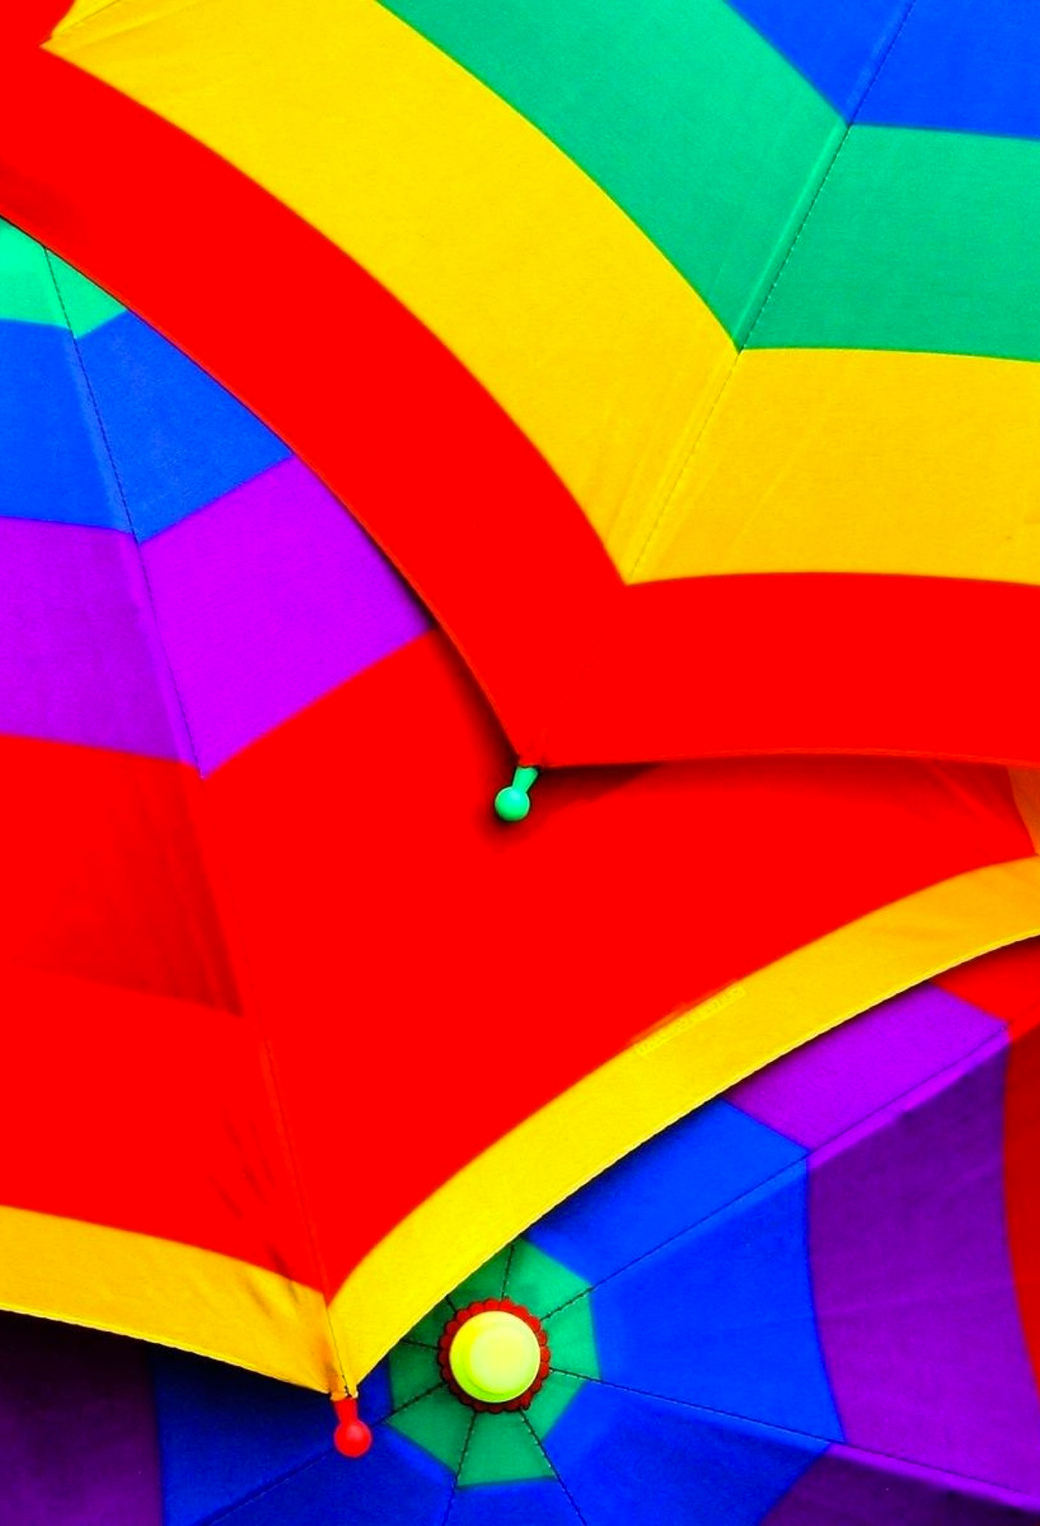 Colorful Umbrellas 3Wallpapers iPhone Colorful Umbrellas